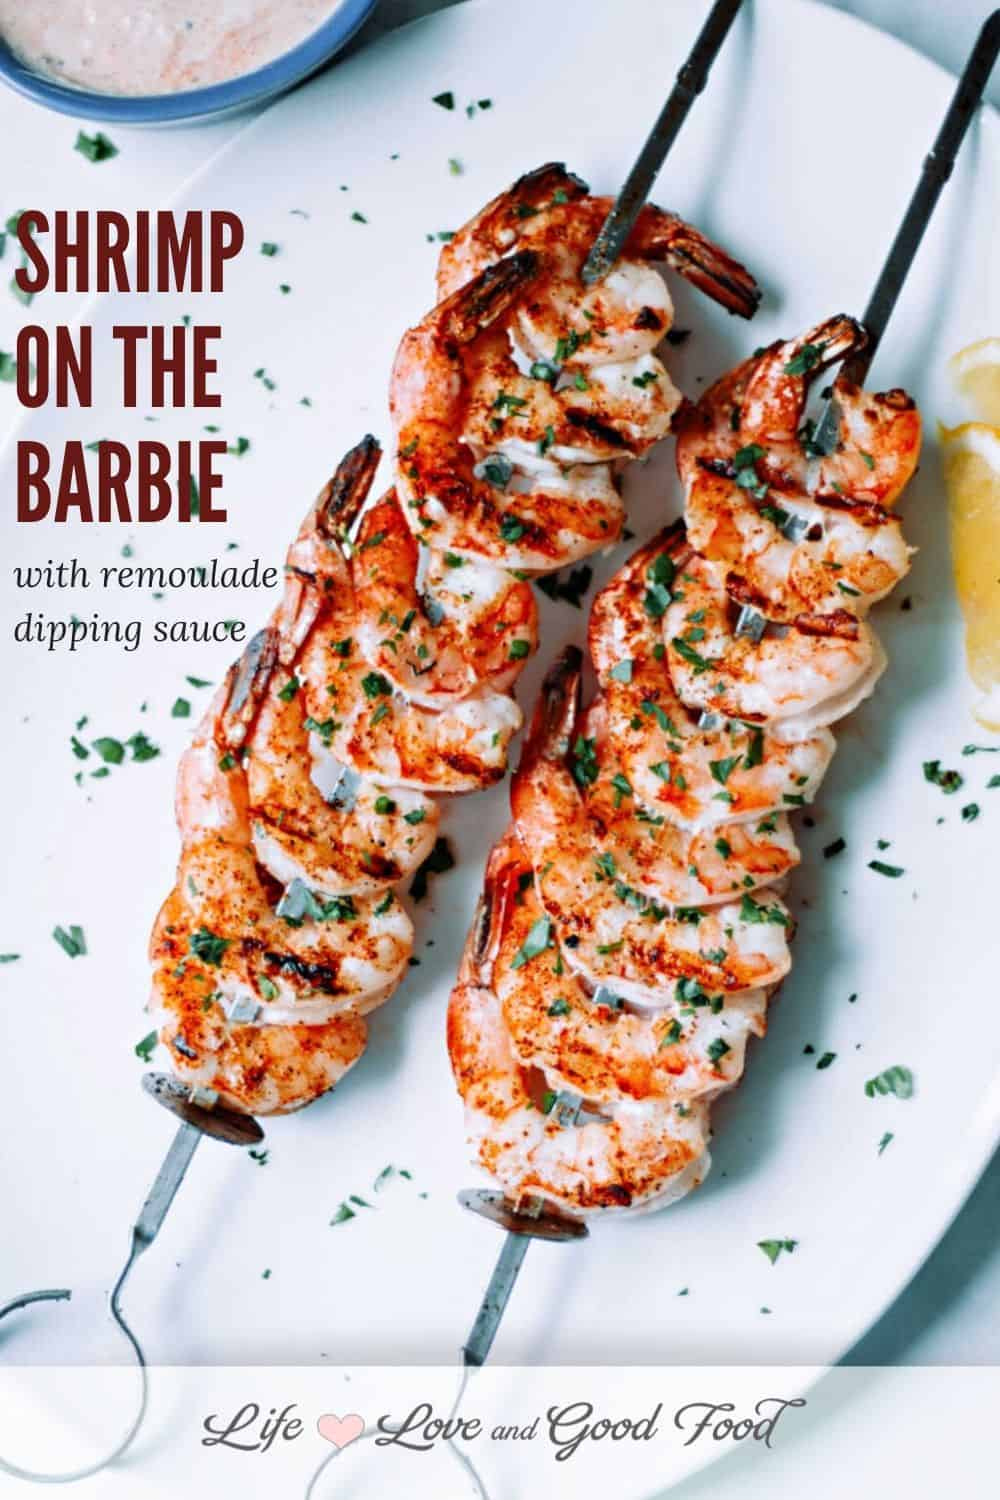 Buttery, spicy, and beautifully charred, Shrimp on the Barbie with a homemade Louisiana-style remoulade sauce is an easy and delicious appetizer for Summer-time grilling. Skewer the shrimp, spritz it with lemon and baste with melted butter, sprinkle with a special seasoning mix, then throw it on a hot grill. Light and fresh, this Outback Steakhouse copycat recipe is a family favorite!